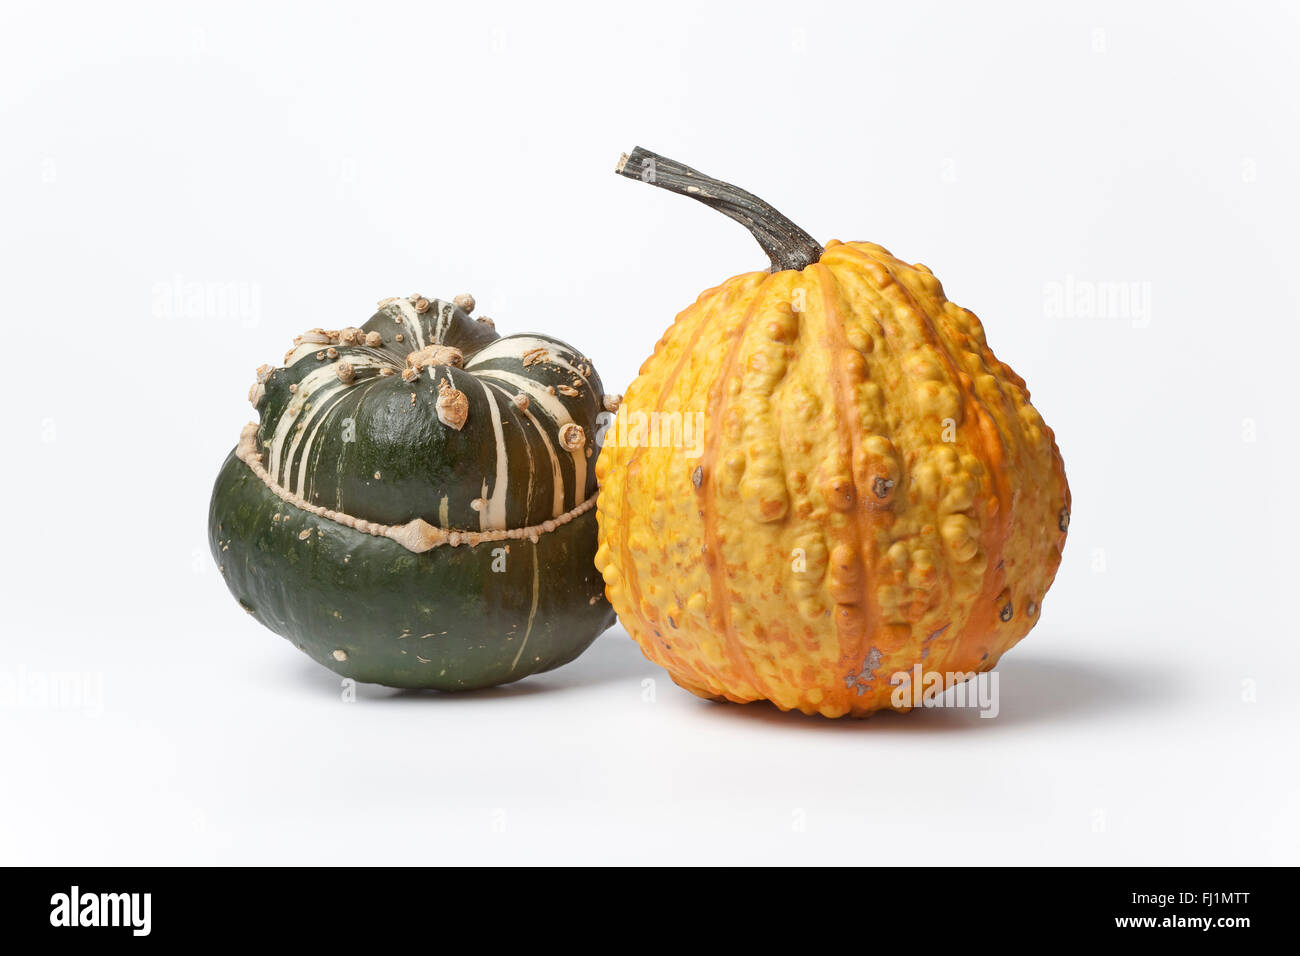 Two decorative pumpkins on white background - Stock Image